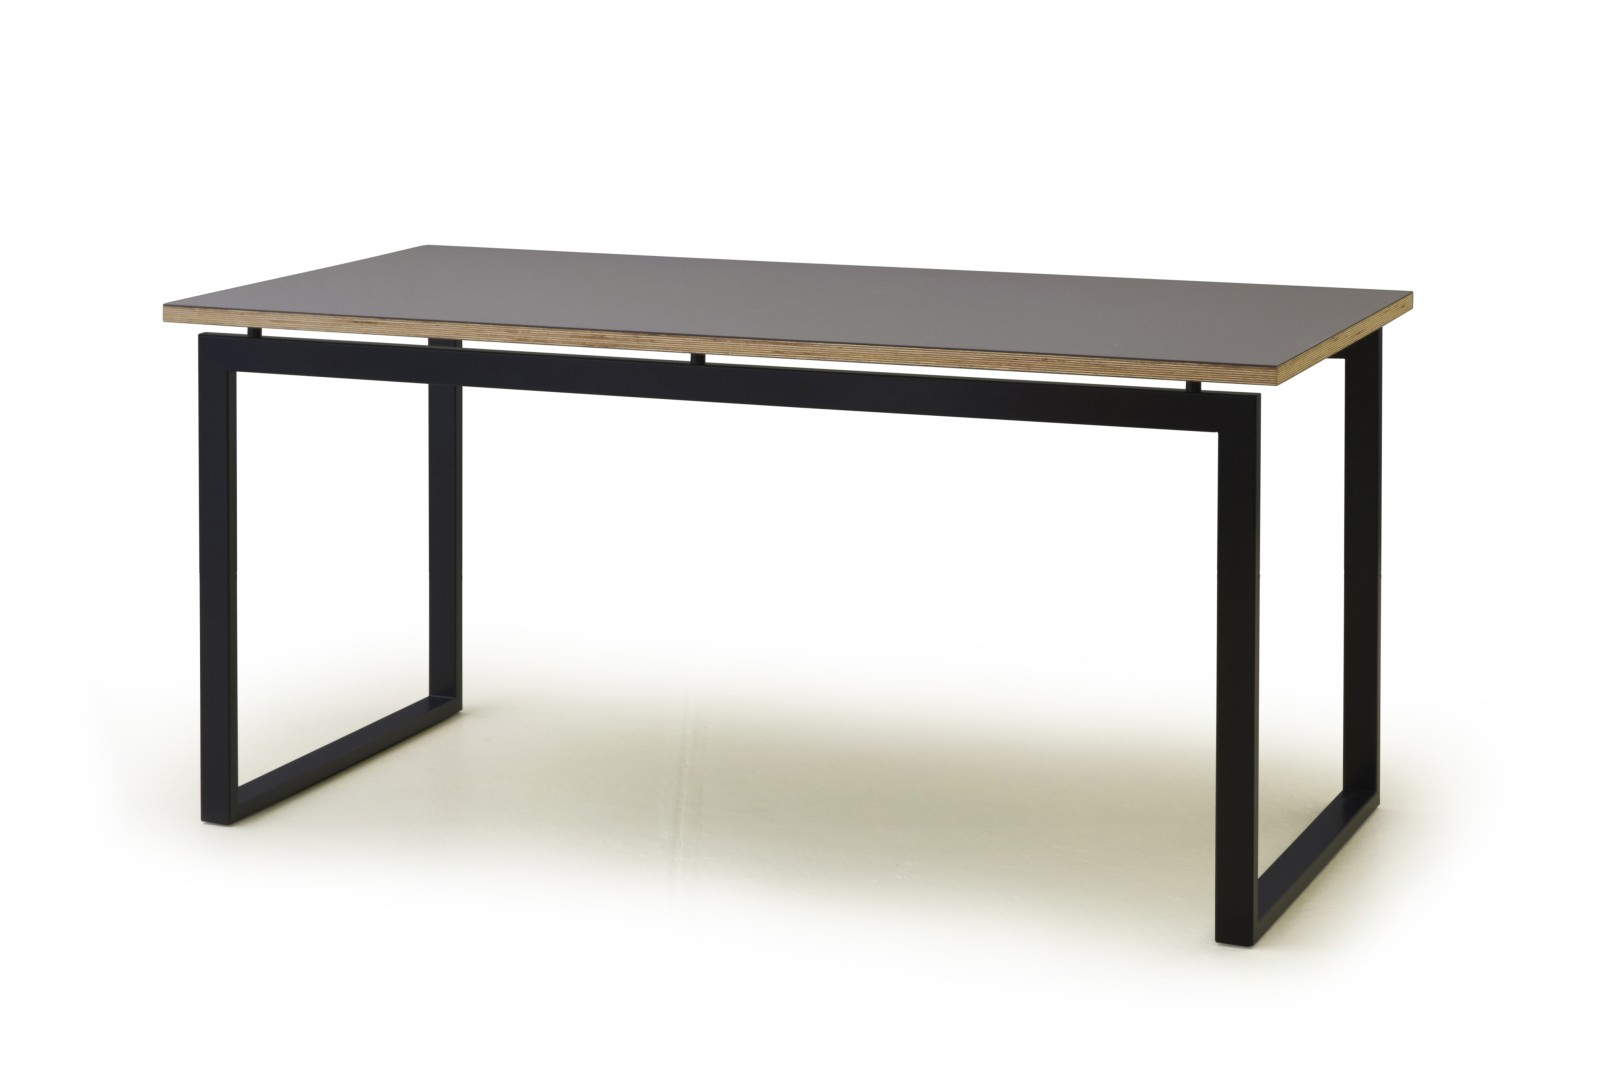 HM107A Quiet Surfaces Table Oak Veneer Grey Legs